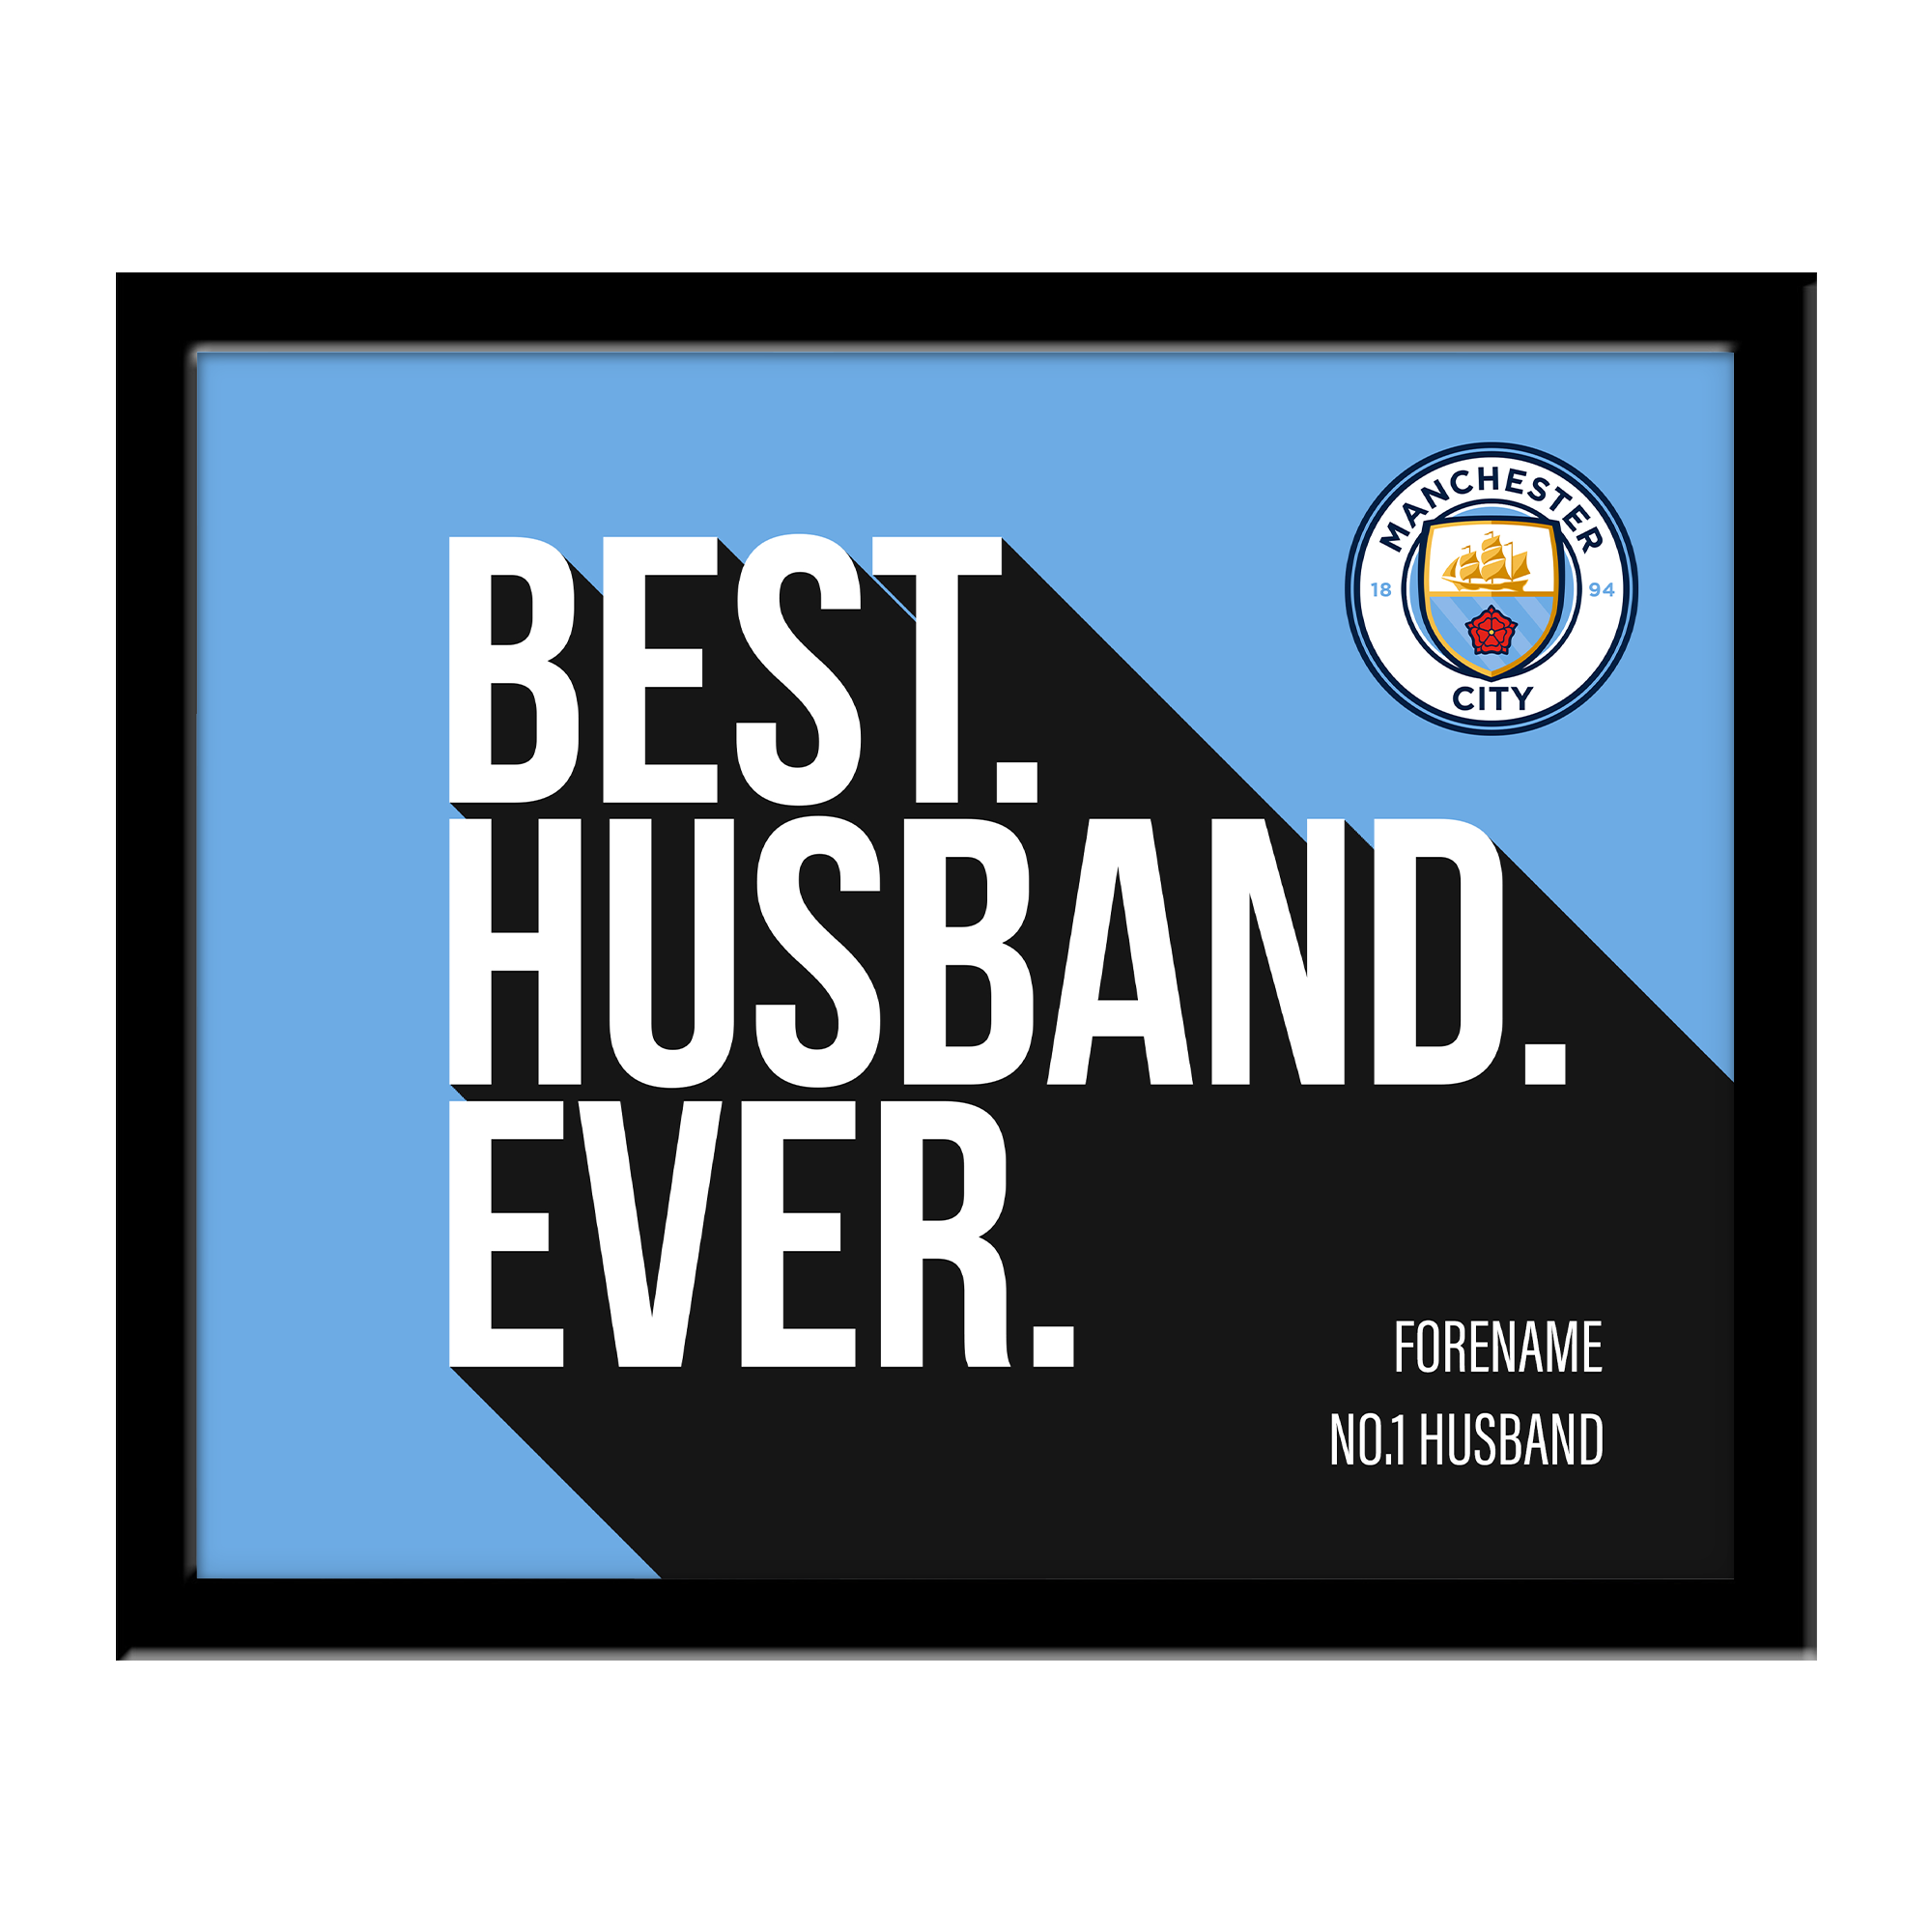 Manchester City FC Best Husband Ever 10 x 8 Photo Framed